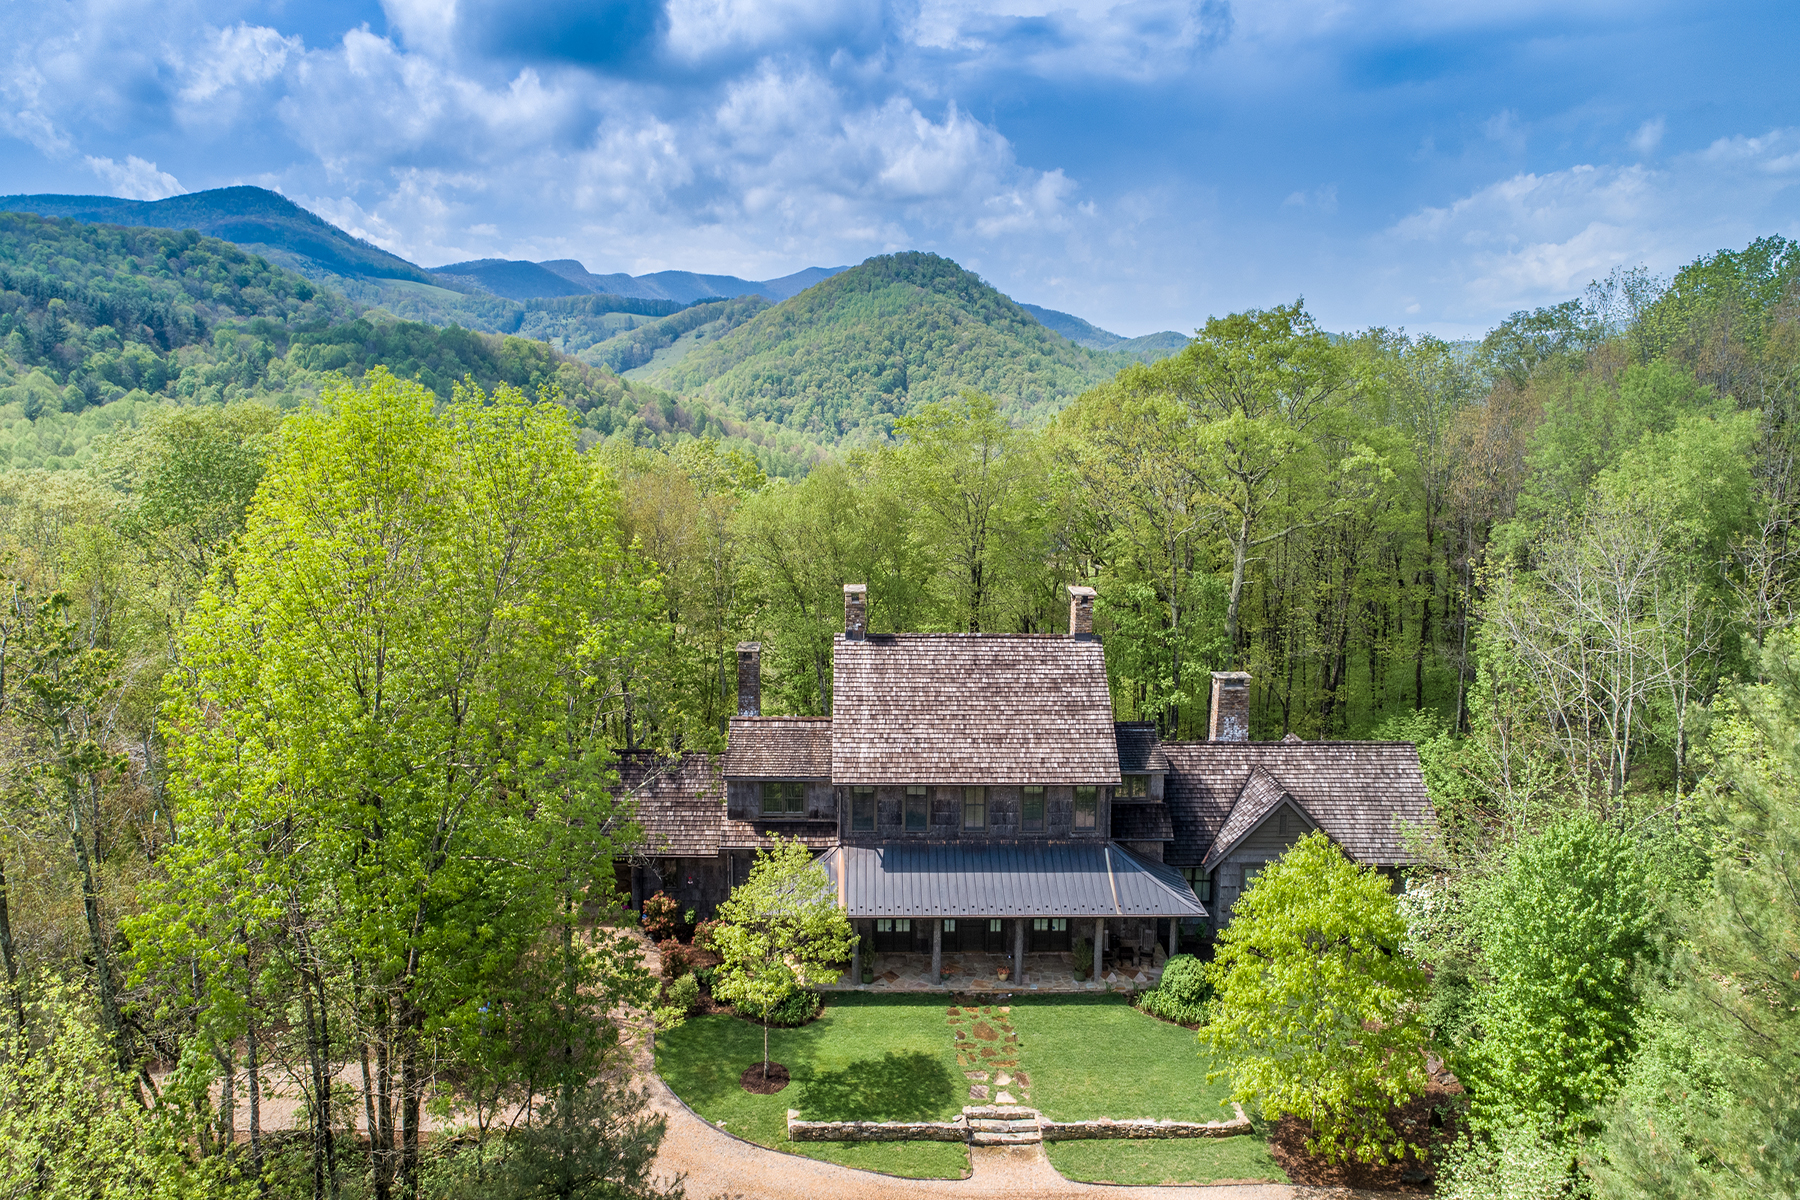 Single Family Home for Active at TODD 649 Bald Fork Rd Todd, North Carolina 28684 United States